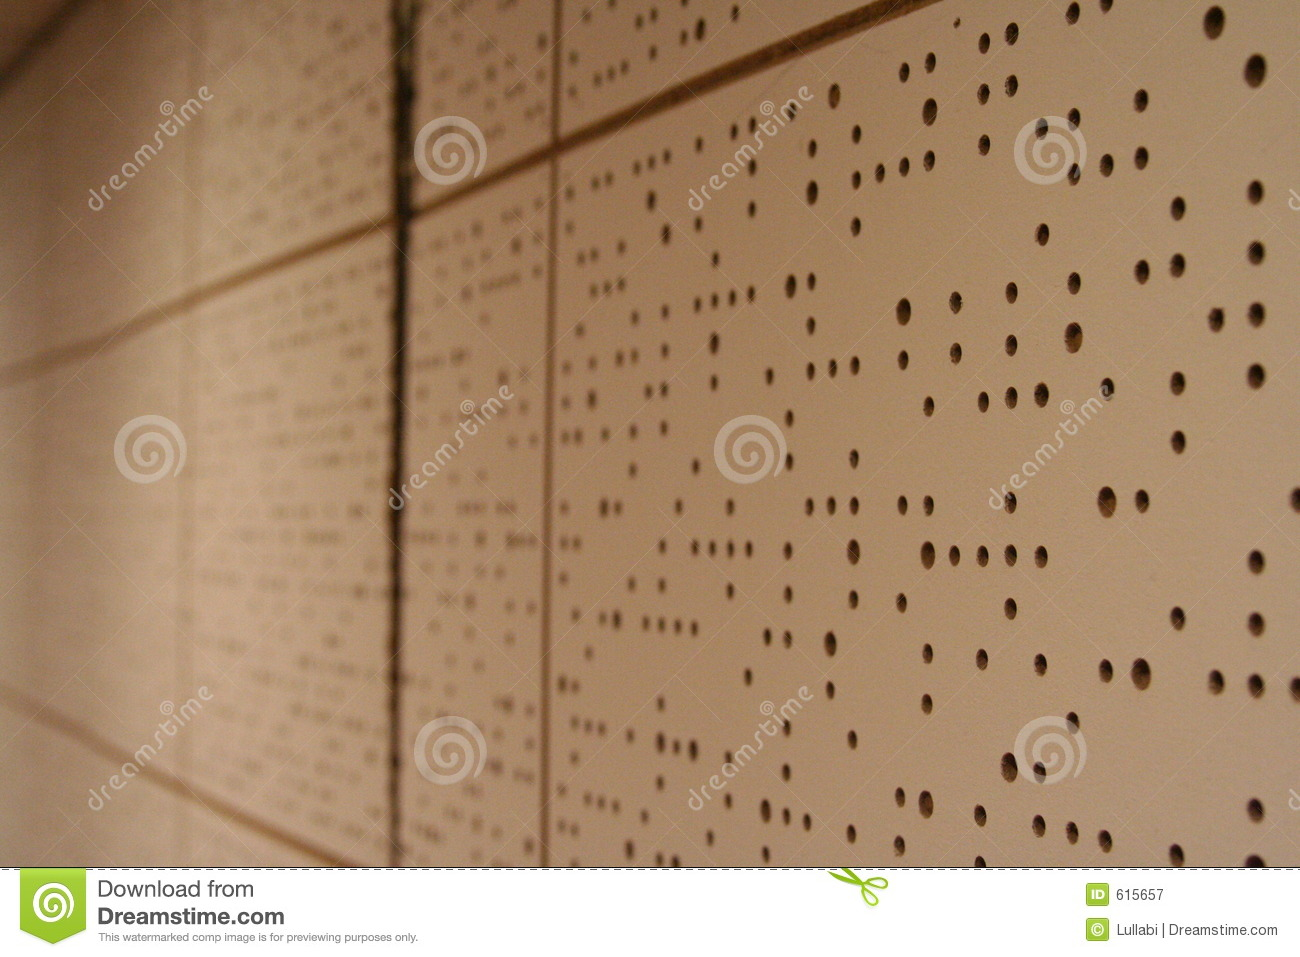 Soundproof wall in a bandroom royalty free stock photography image 615657 Soundproofing for walls interior